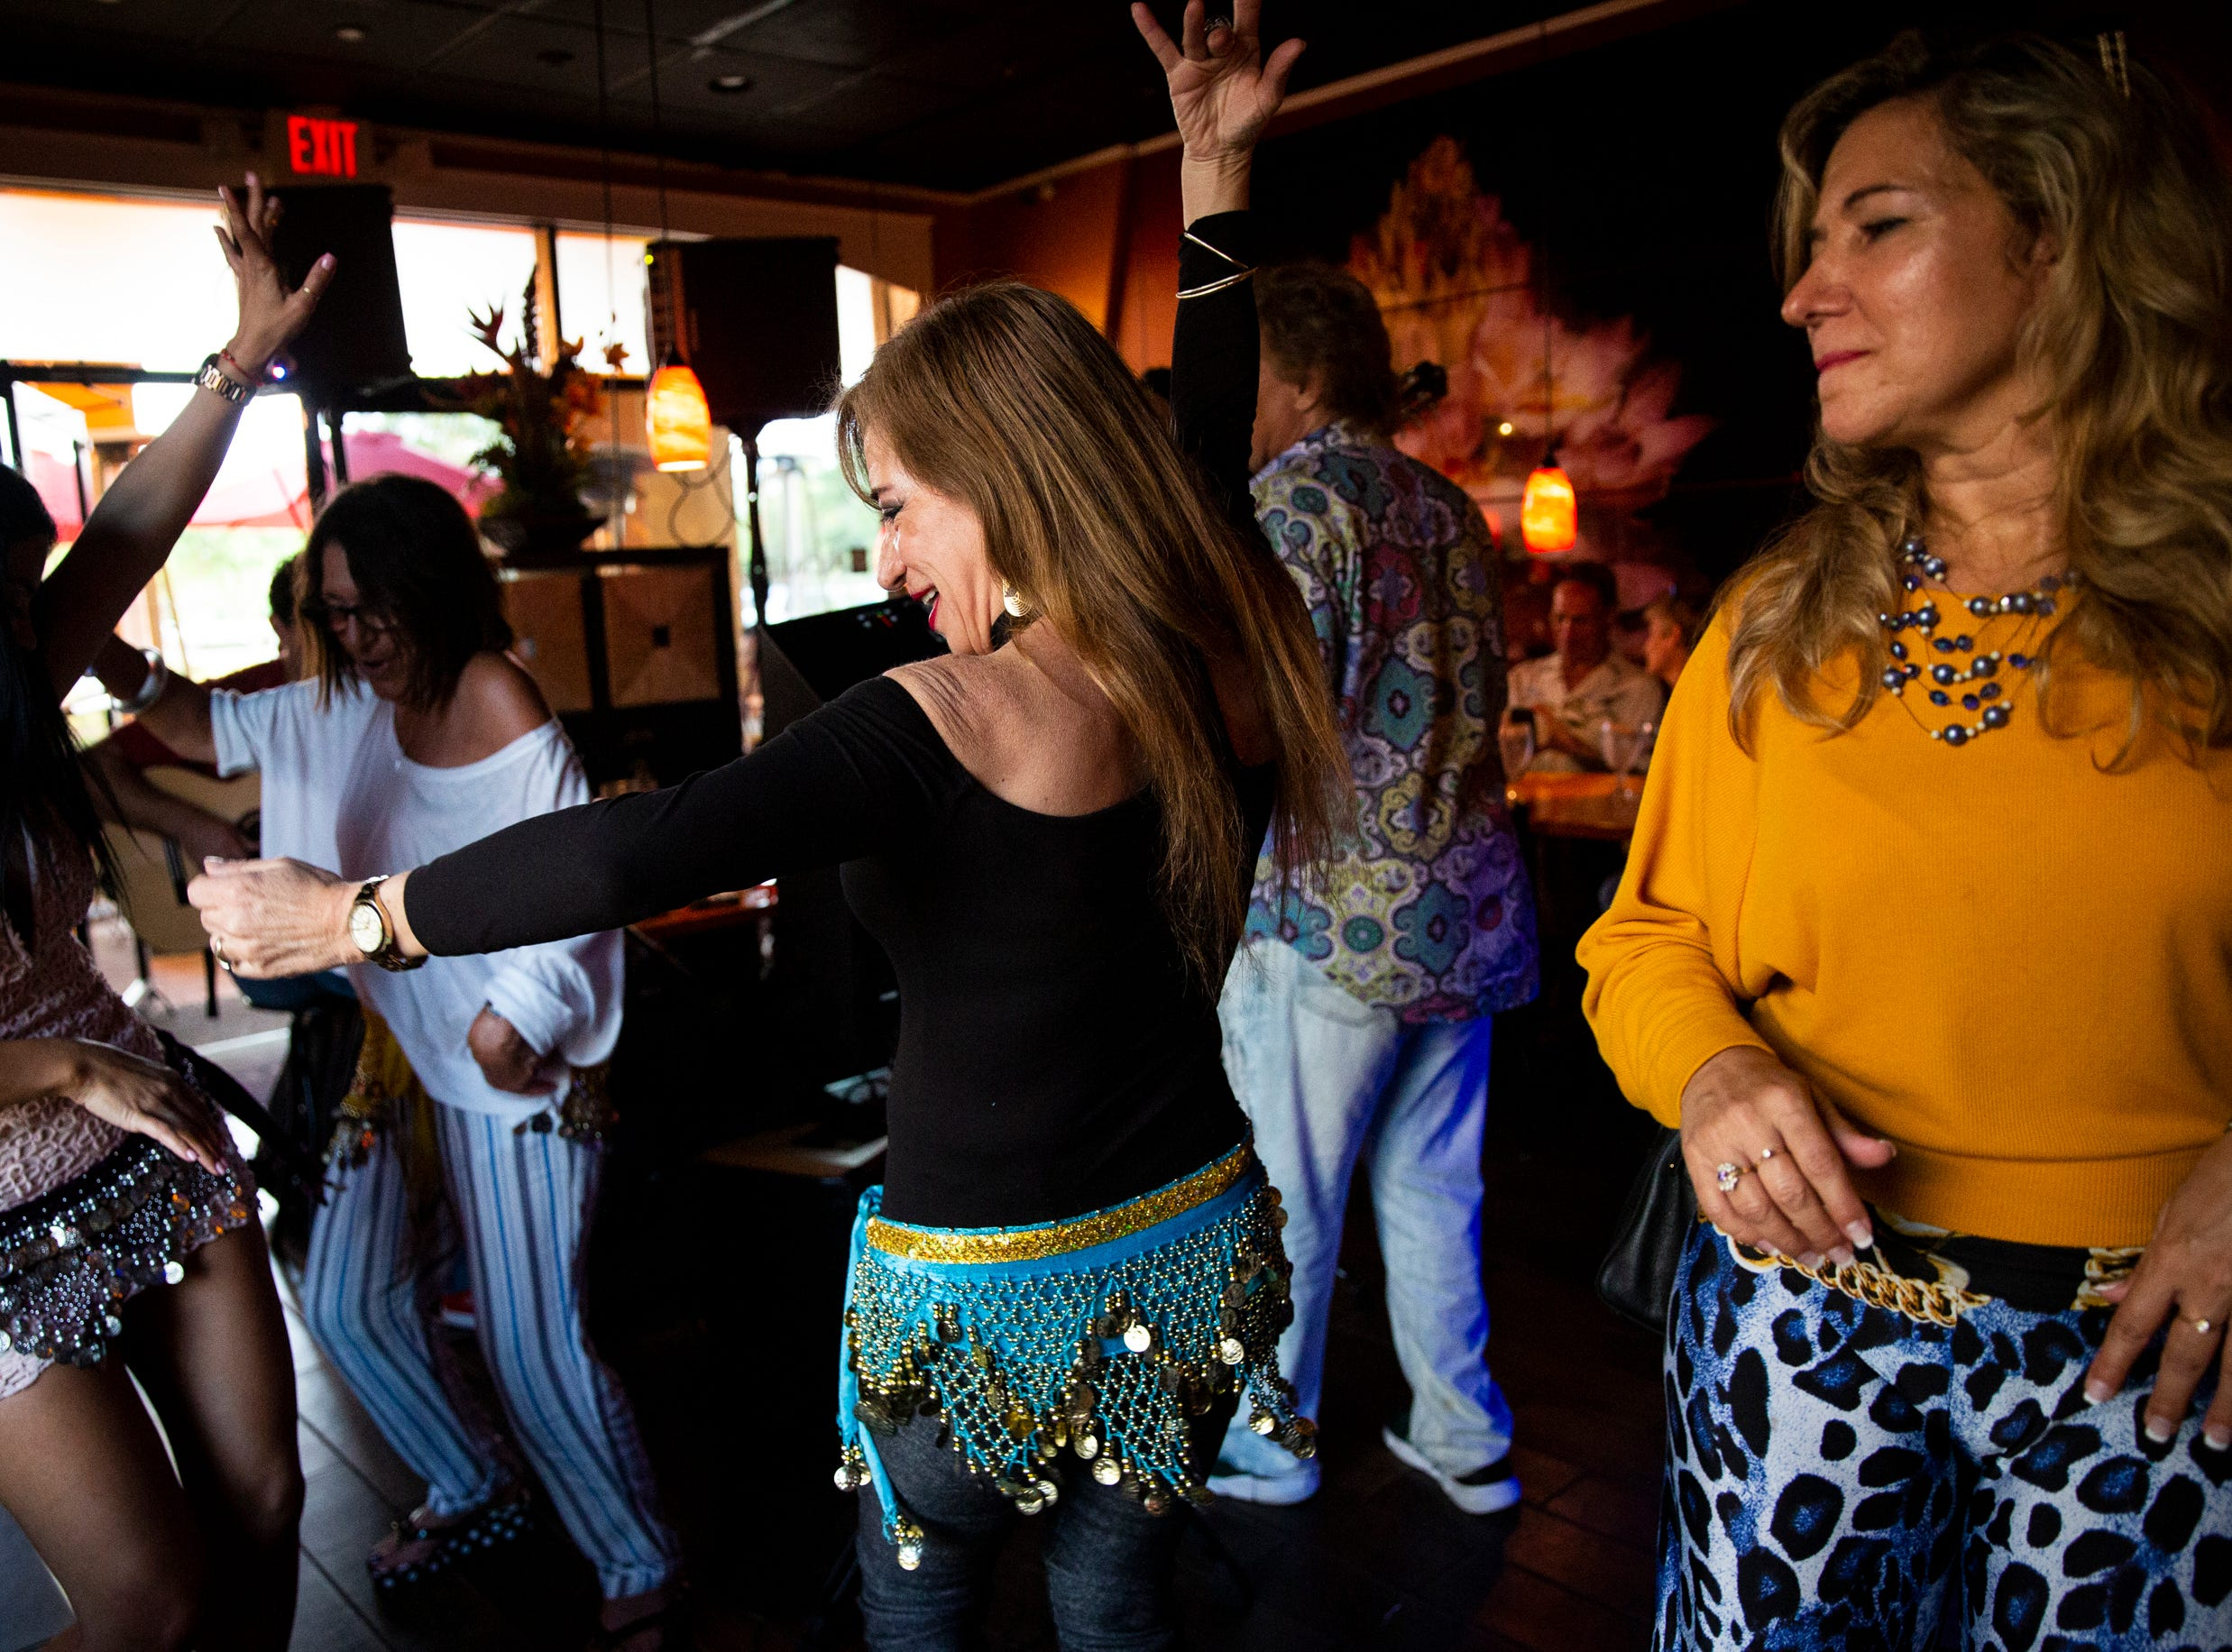 Nella Nugent, center, dances during a performance by El Gato Solea and the Flamenco Fusion at Komoon Thai Sushi and Ceviche in Naples on Sunday, March 24, 2019.